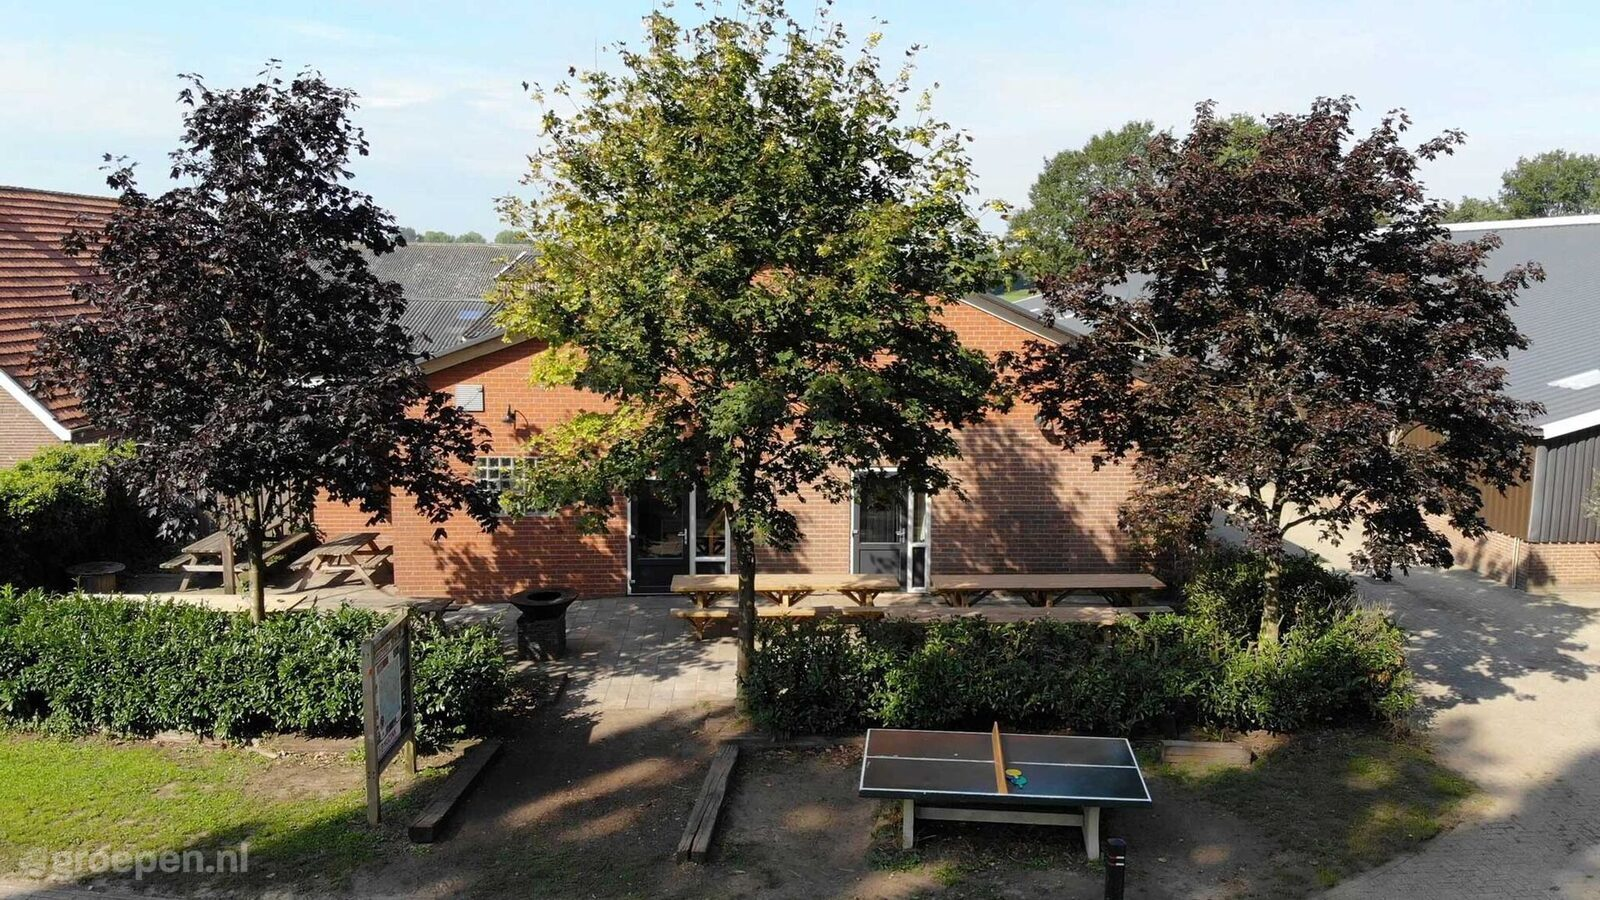 Group accommodation Haaksbergen